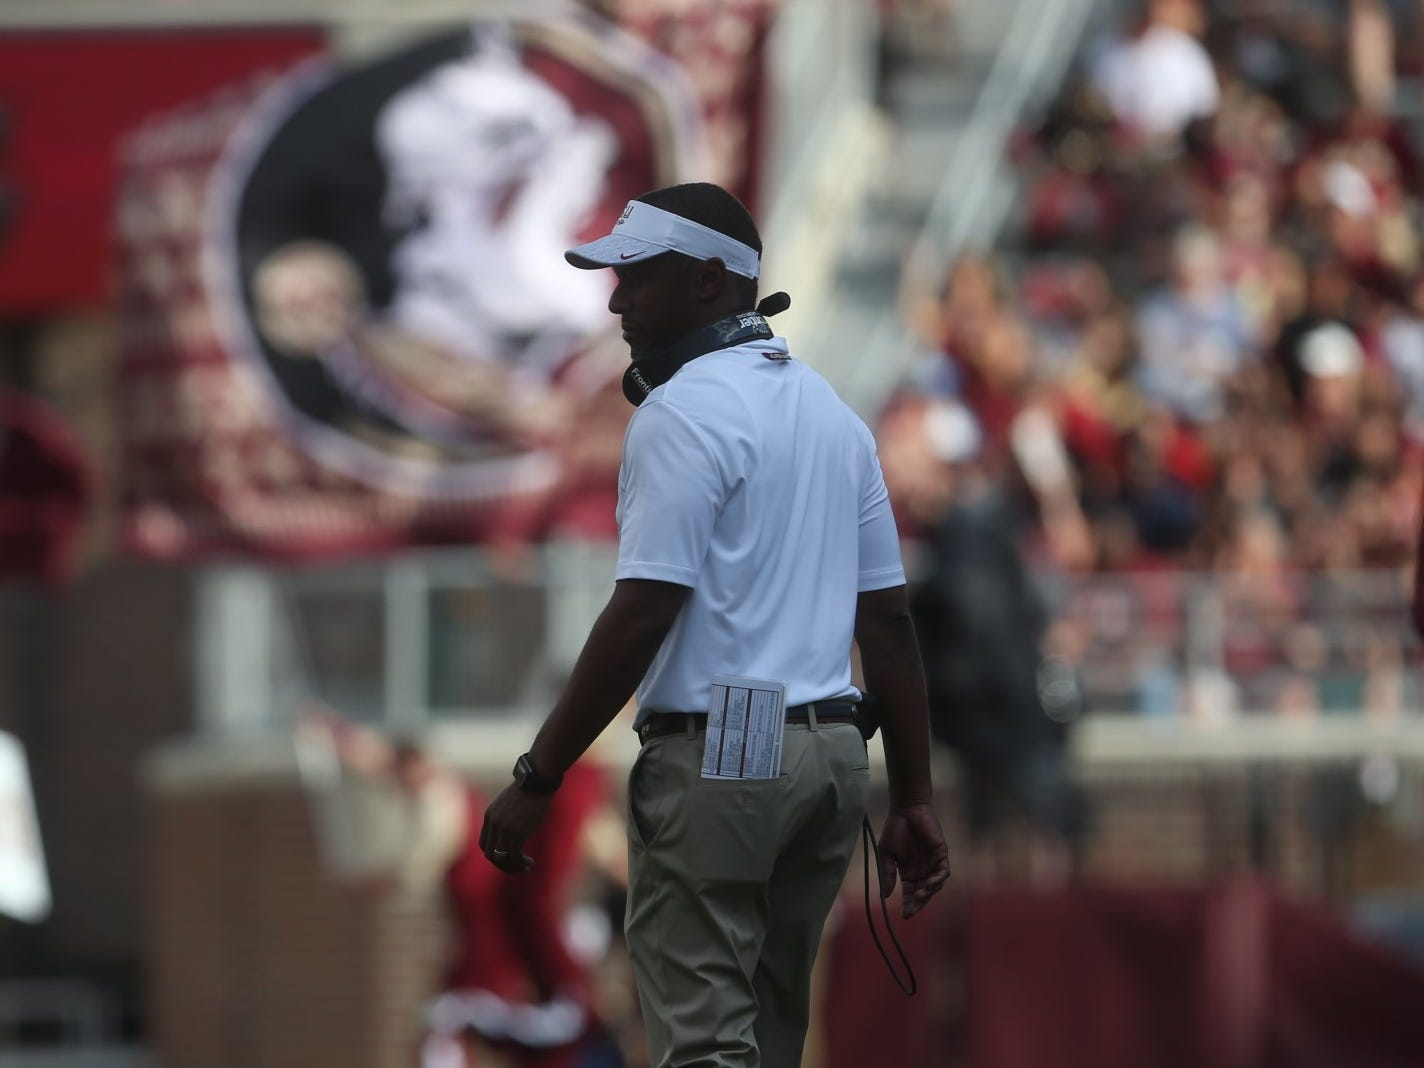 Florida State football head coach Willie Taggart watches his team come off the field after a touchdown during a game against Wake Forest at Doak Campbell Stadium on Saturday, Oct. 20, 2018.